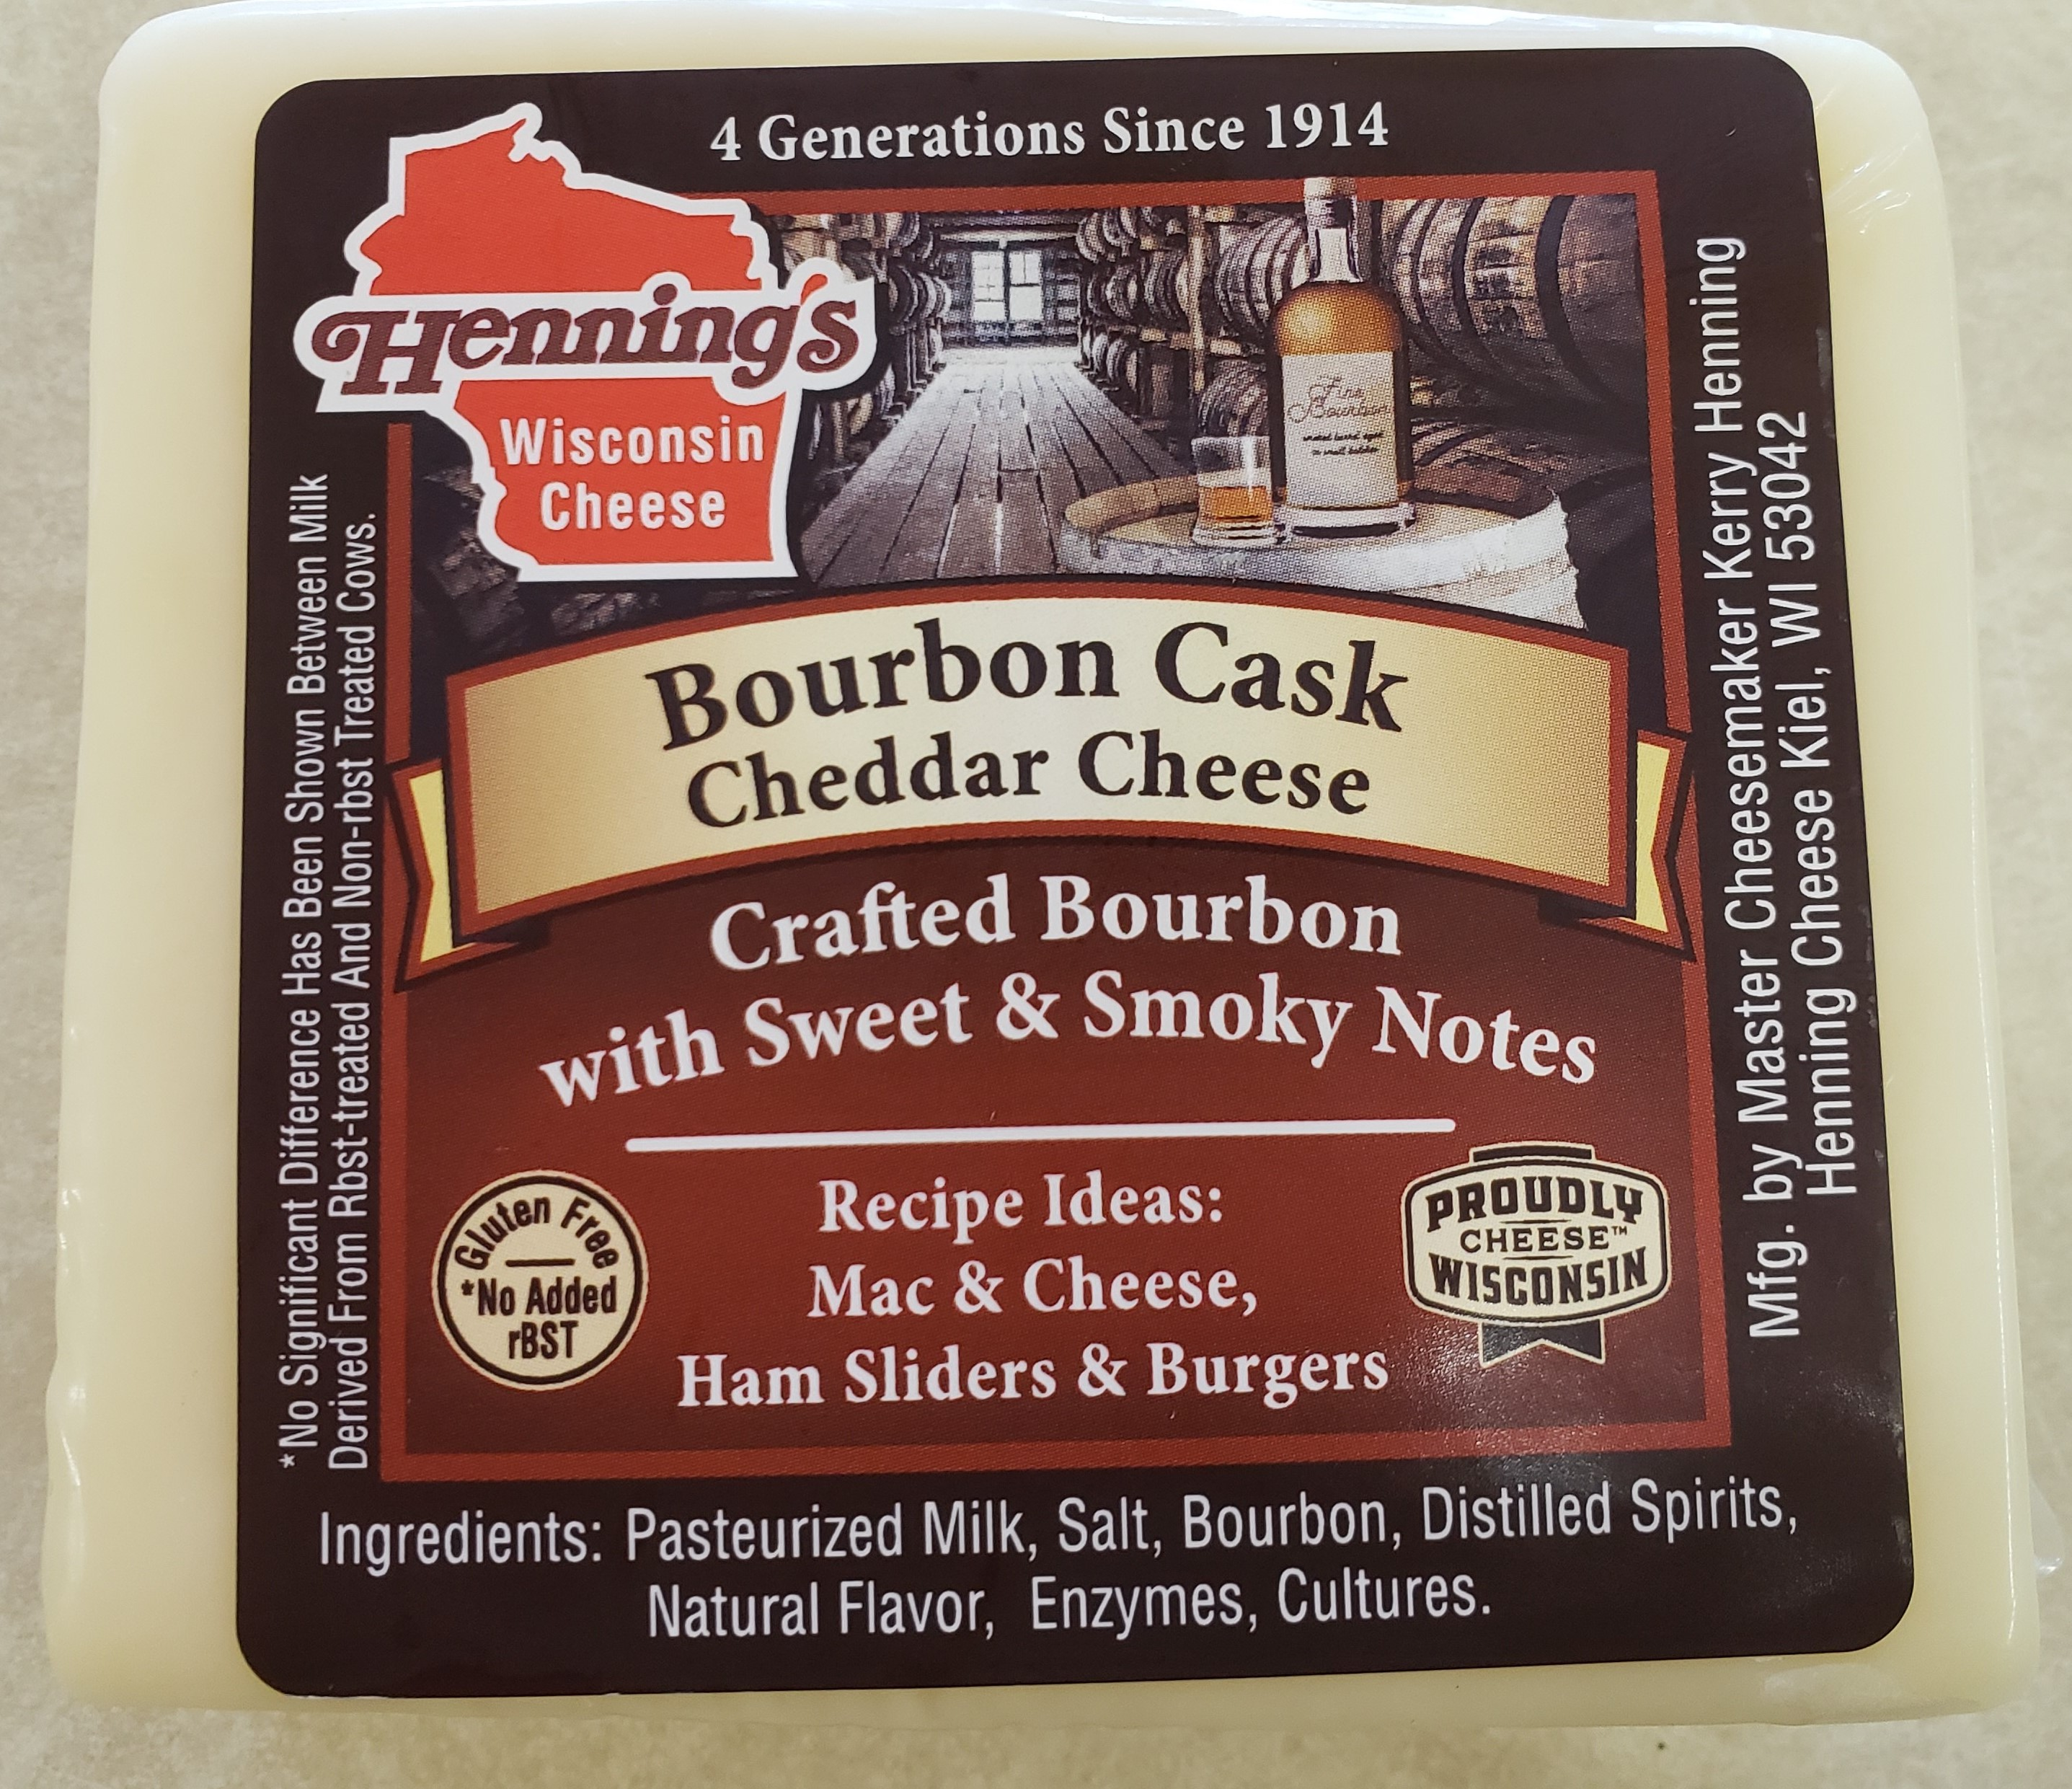 Henning's Bourbon Cask Cheddar Cheese